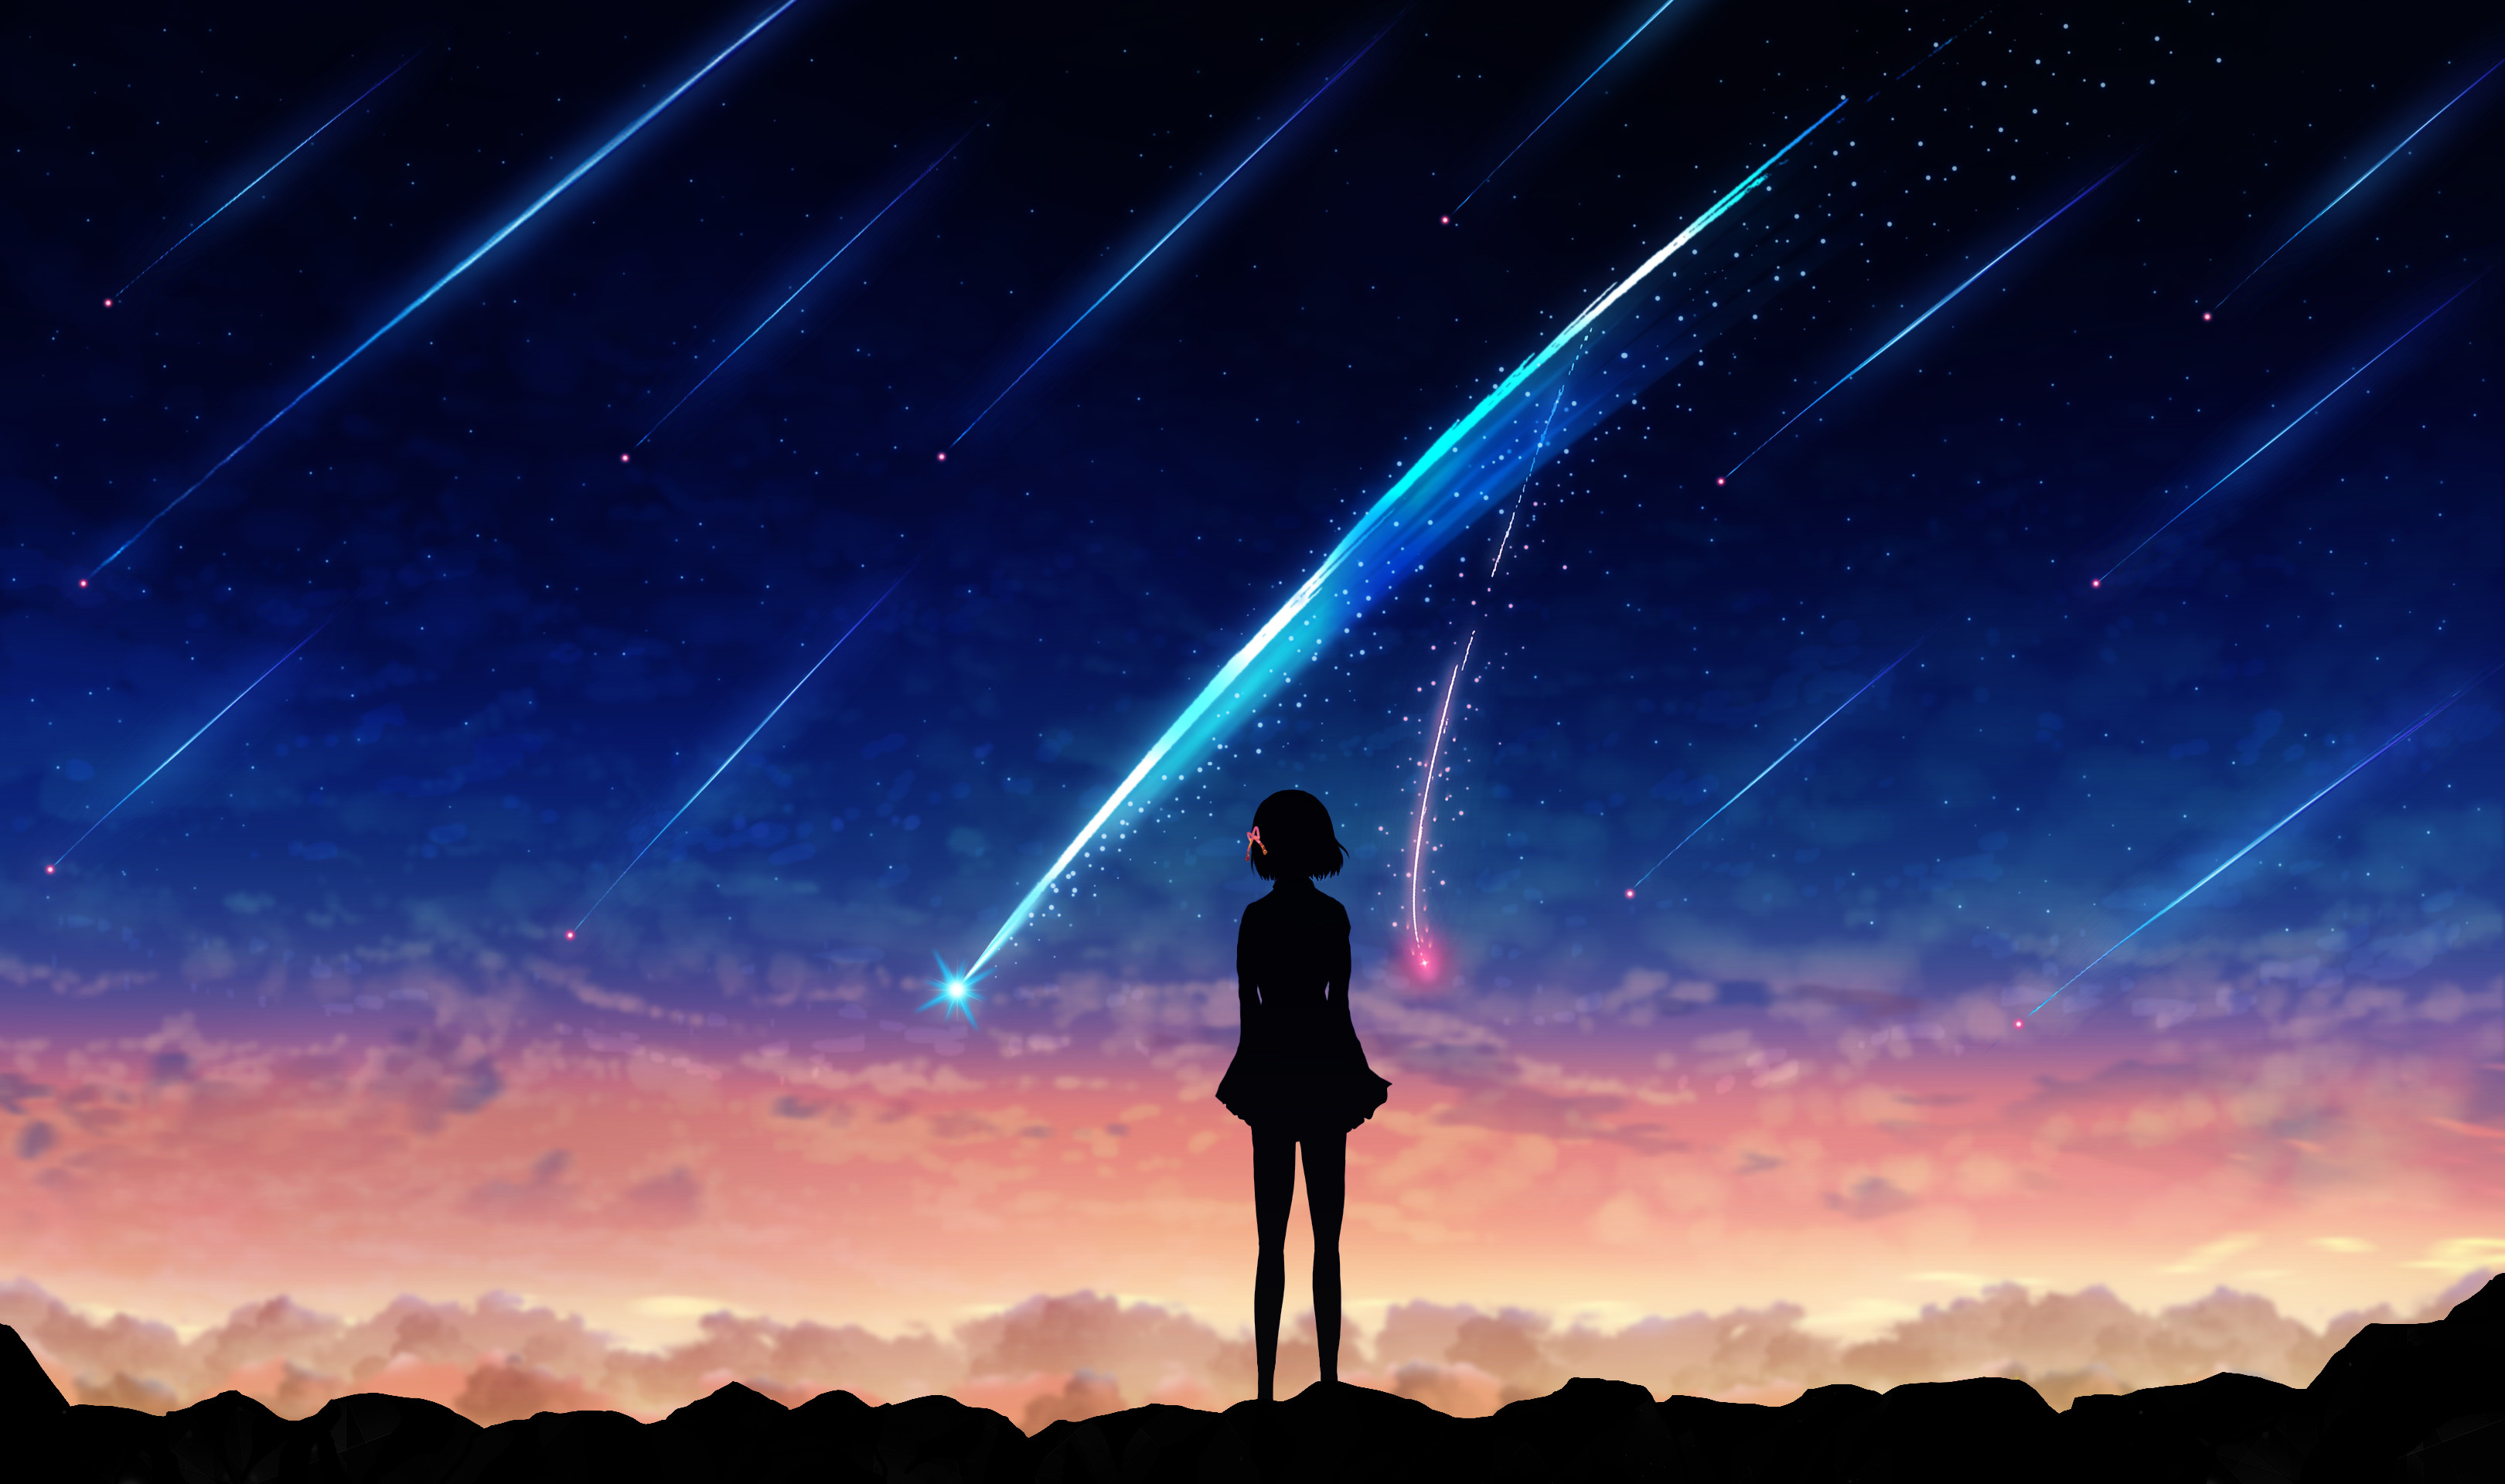 Mitsuha Miyamizu Kimi No Na Wa Your Name Wallpaper 4k 3240x1920 Download Hd Wallpaper Wallpapertip